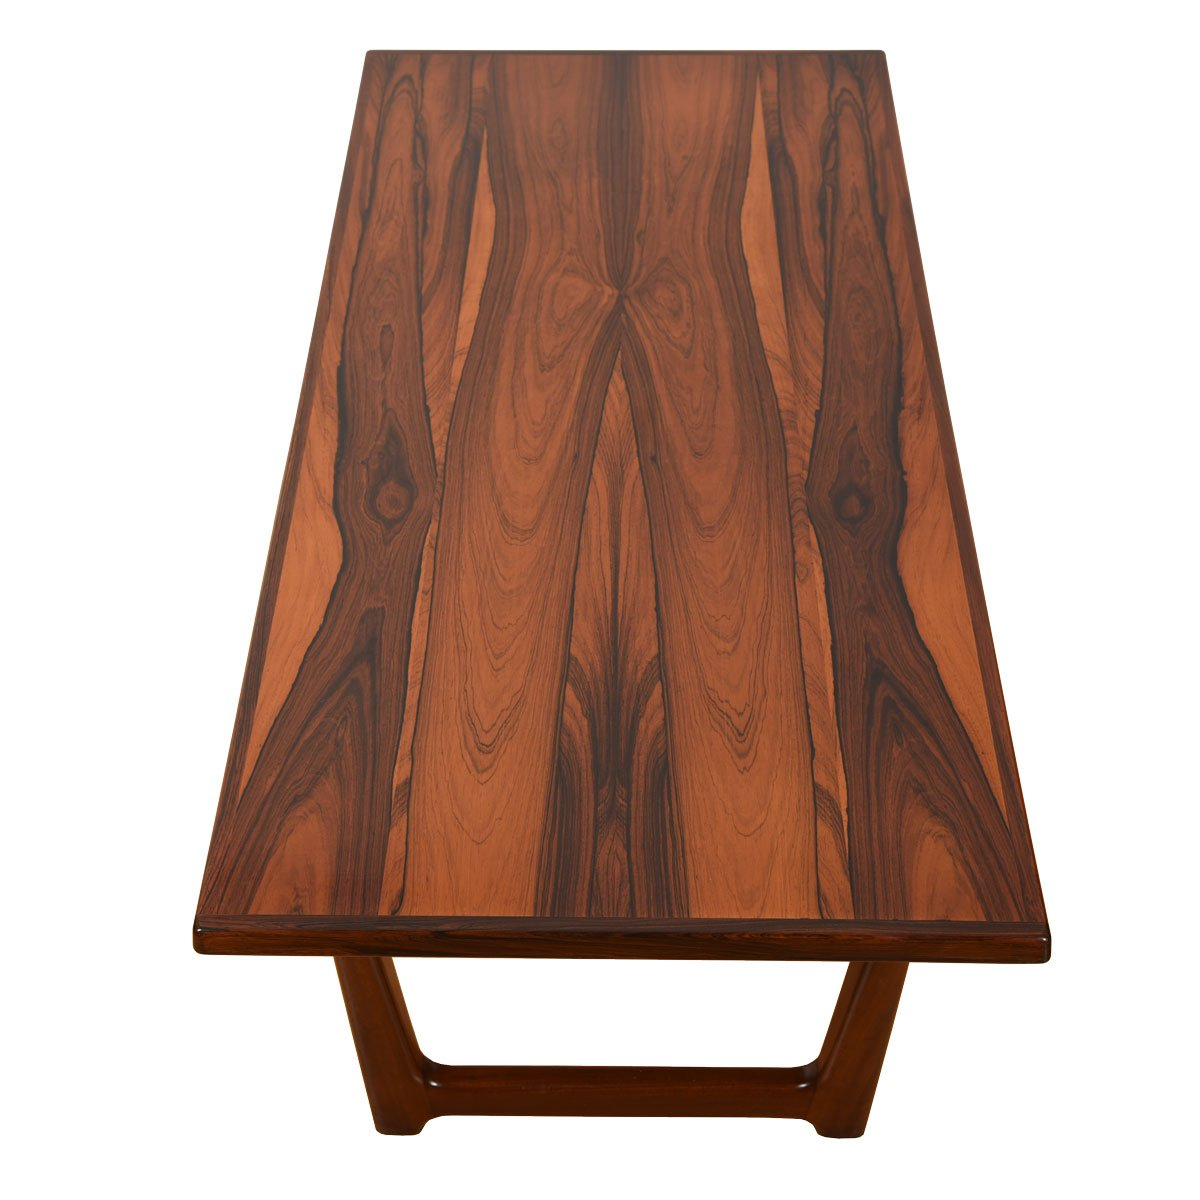 Danish Modern Rosewood Sleigh-Leg Coffee Table